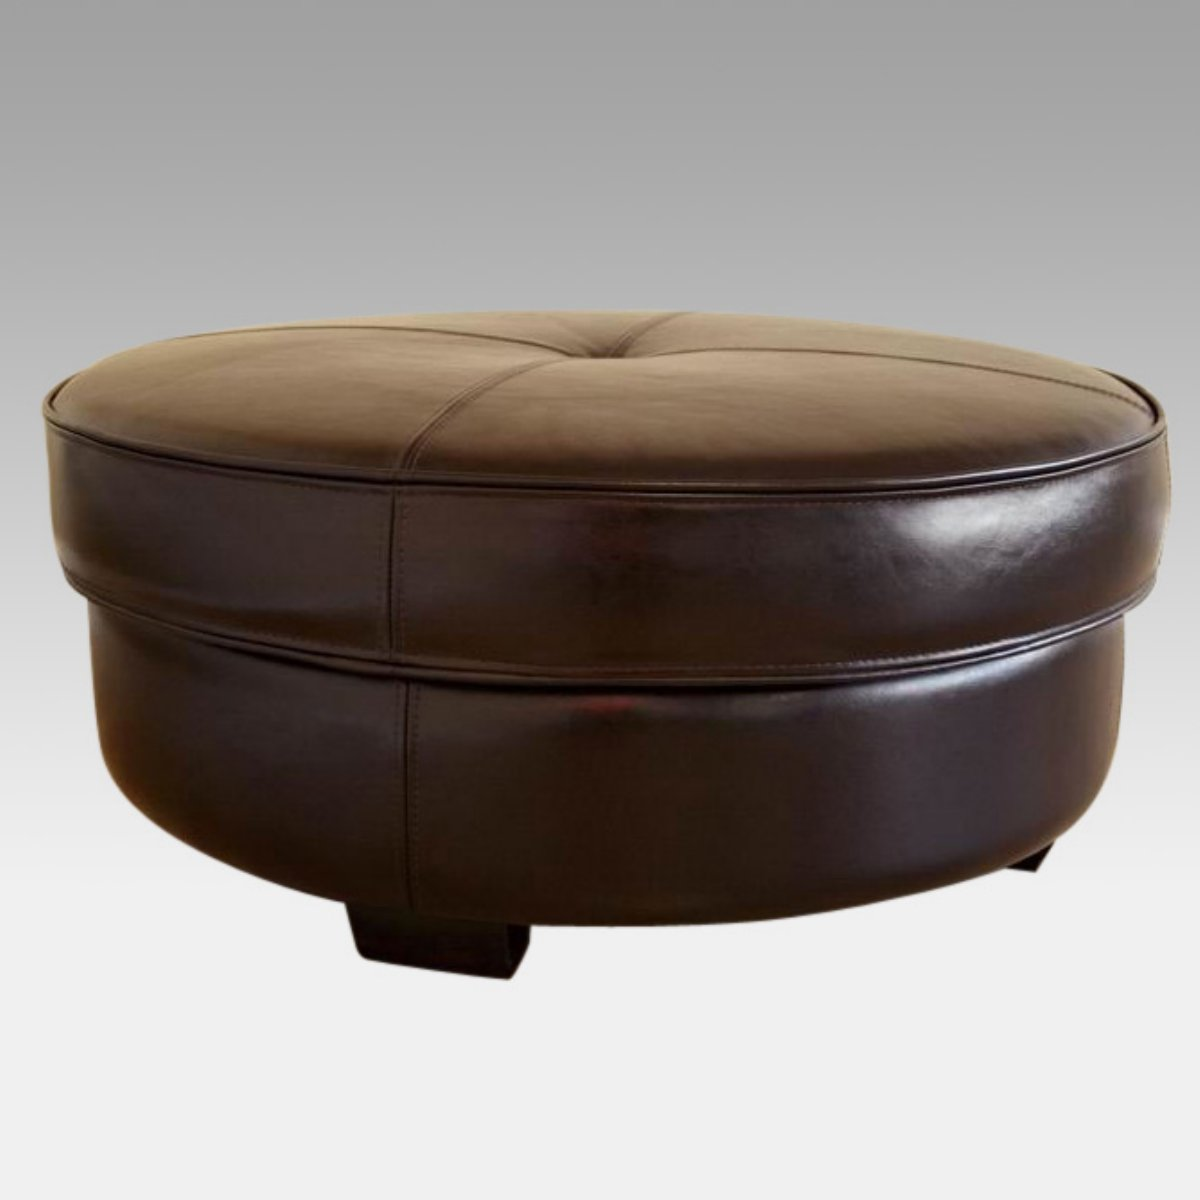 Round Coffee Table Leather Top Round Coffee Table Leather Brown Round Leather Coffee Table (View 5 of 10)